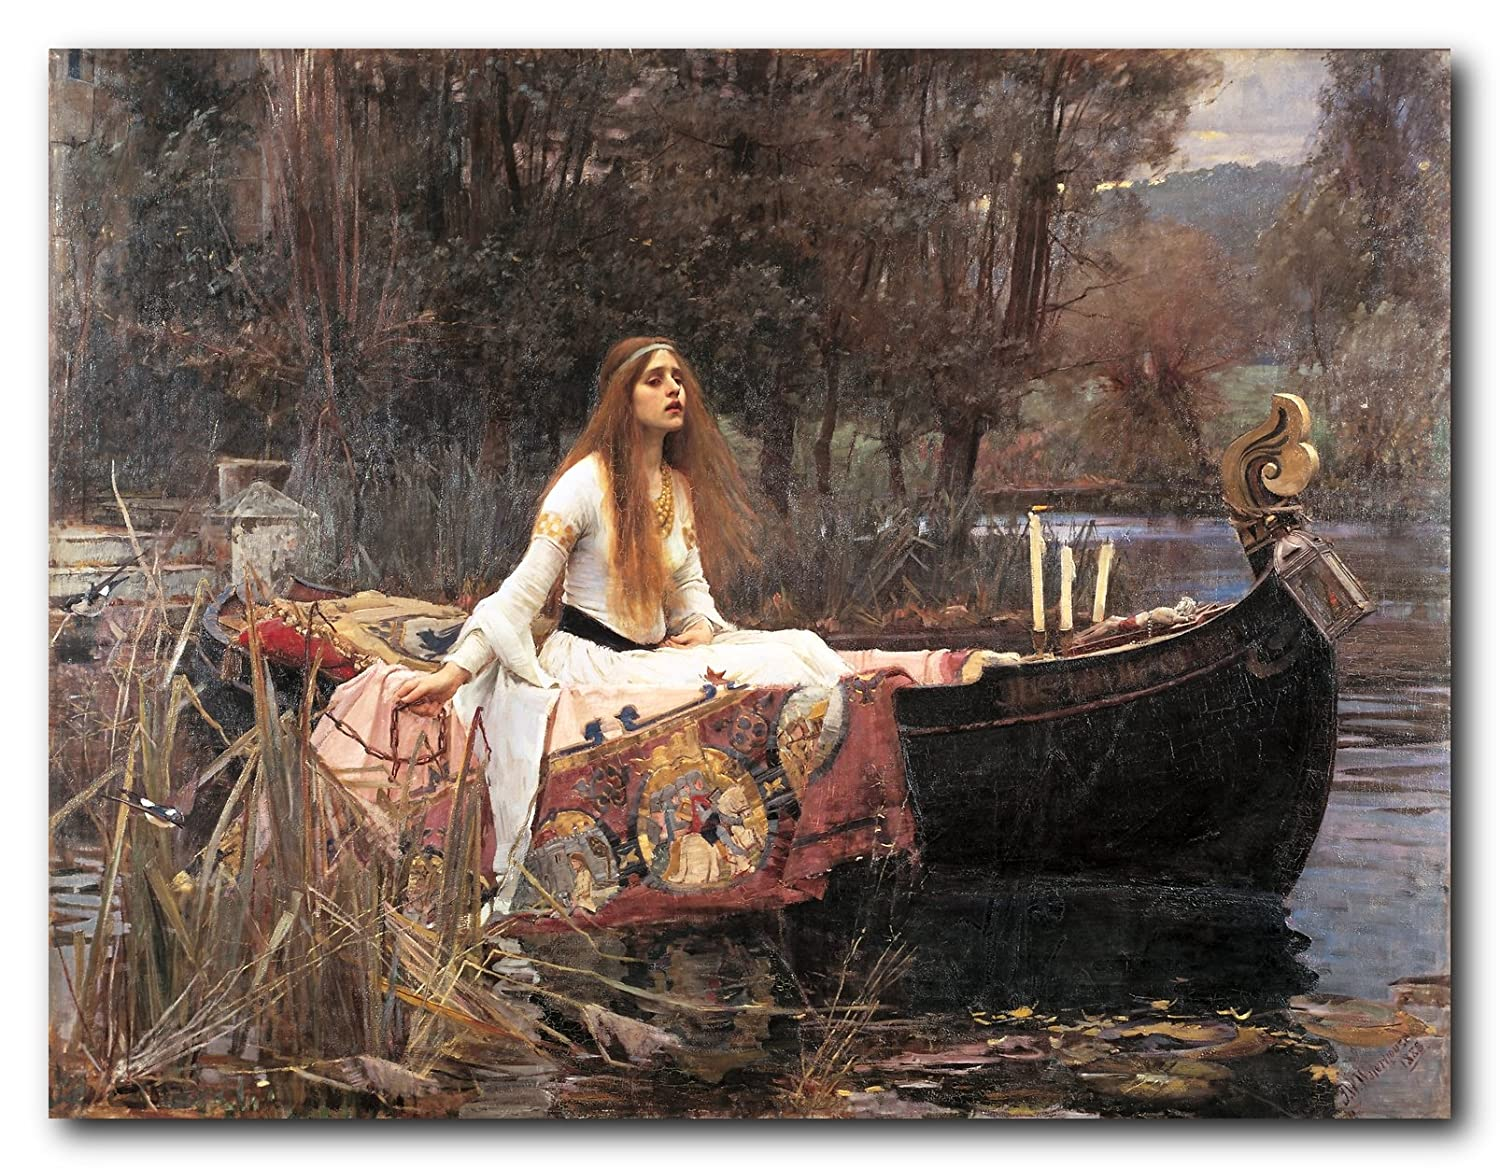 Wall Decor The Lady of Shalott John Waterhouse Boat Picture Art Print Poster (16x20) Impact Posters